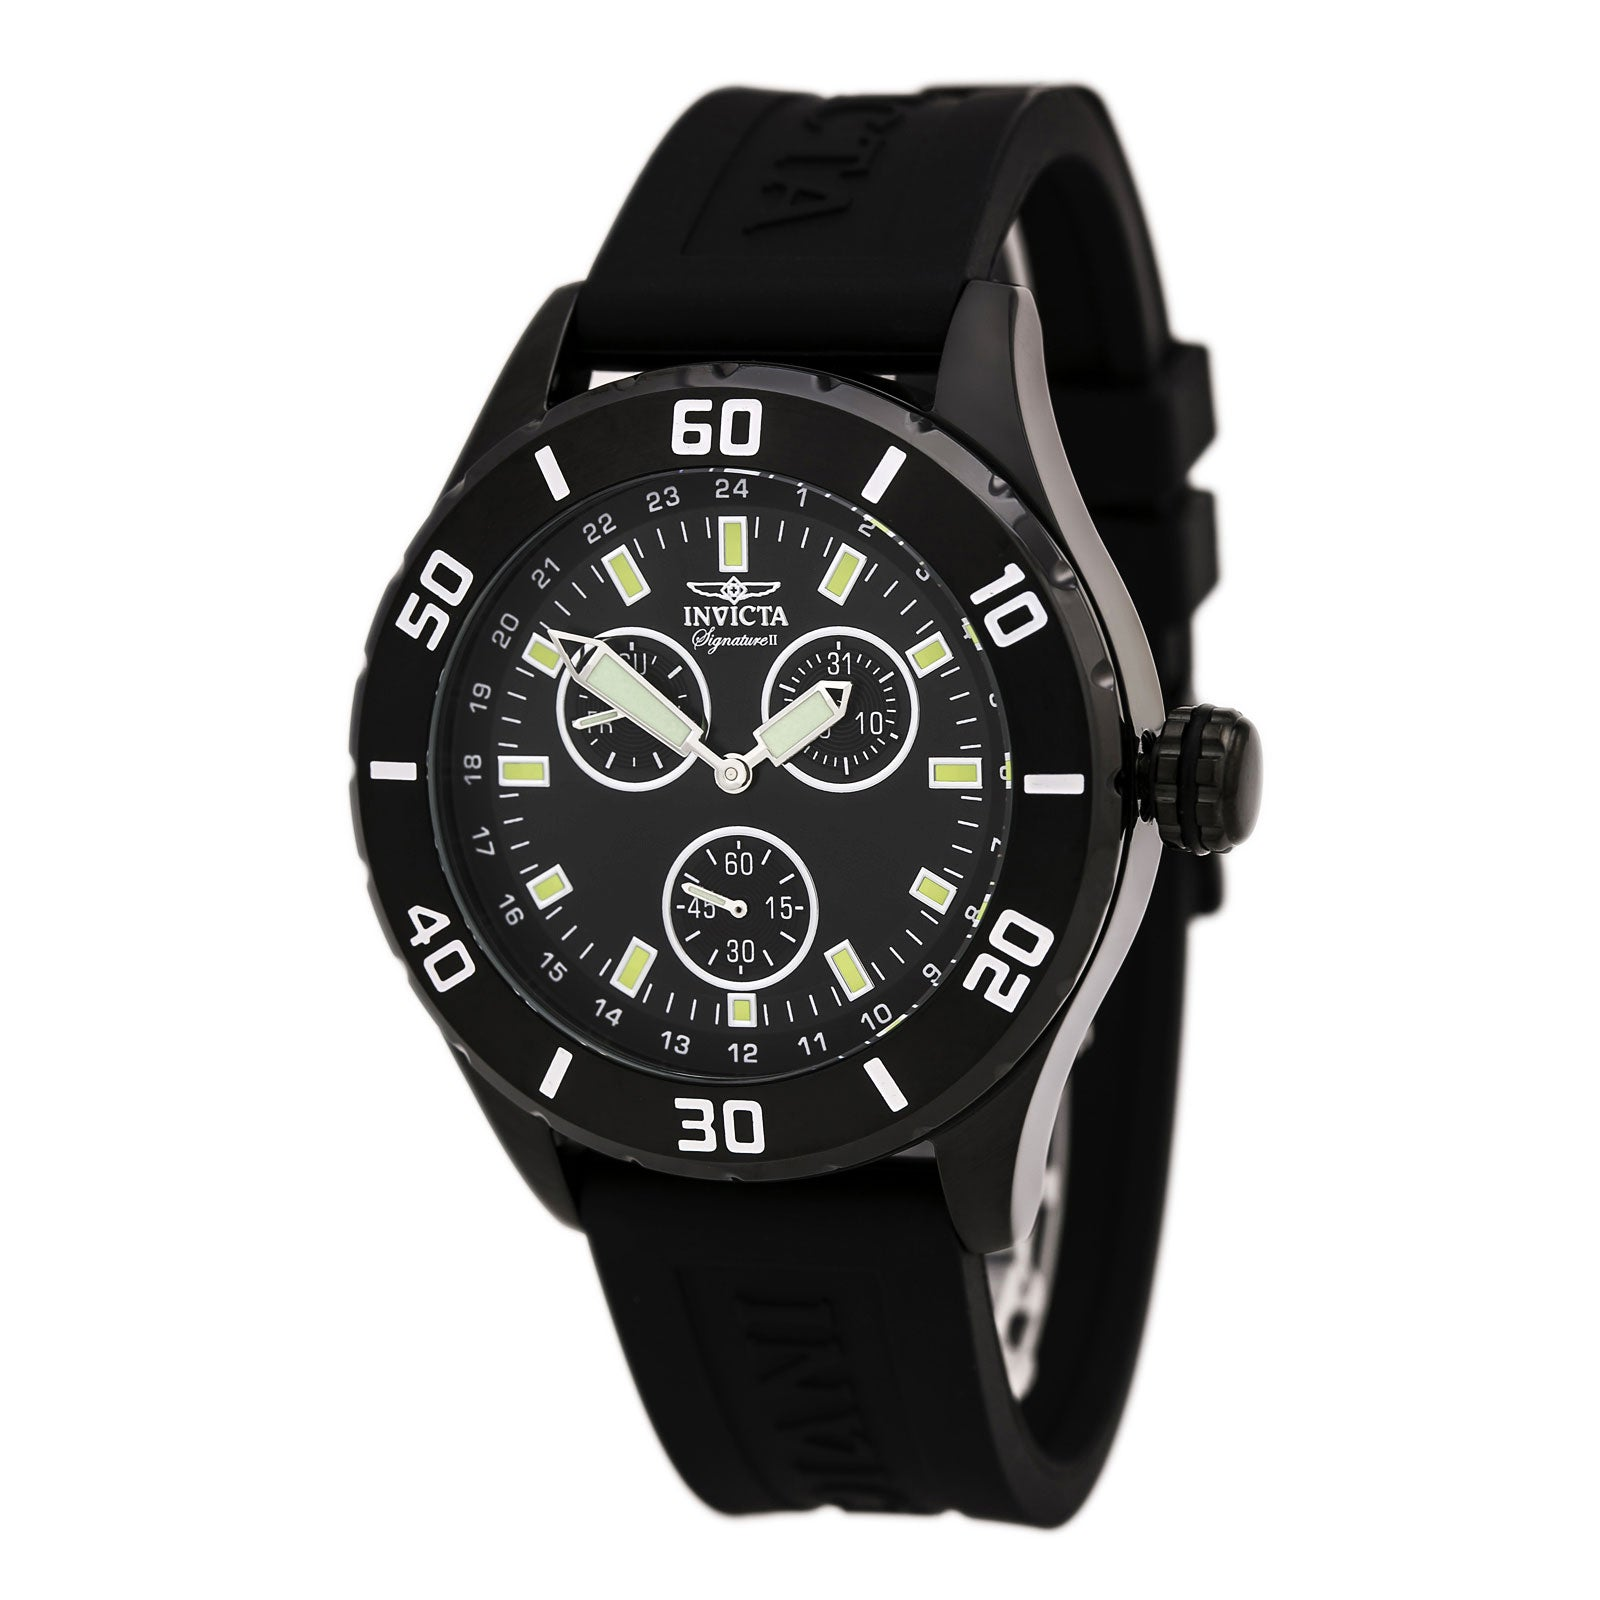 Invicta 7058 Men's Signature II Black Dial Black Rubber Strap Watch